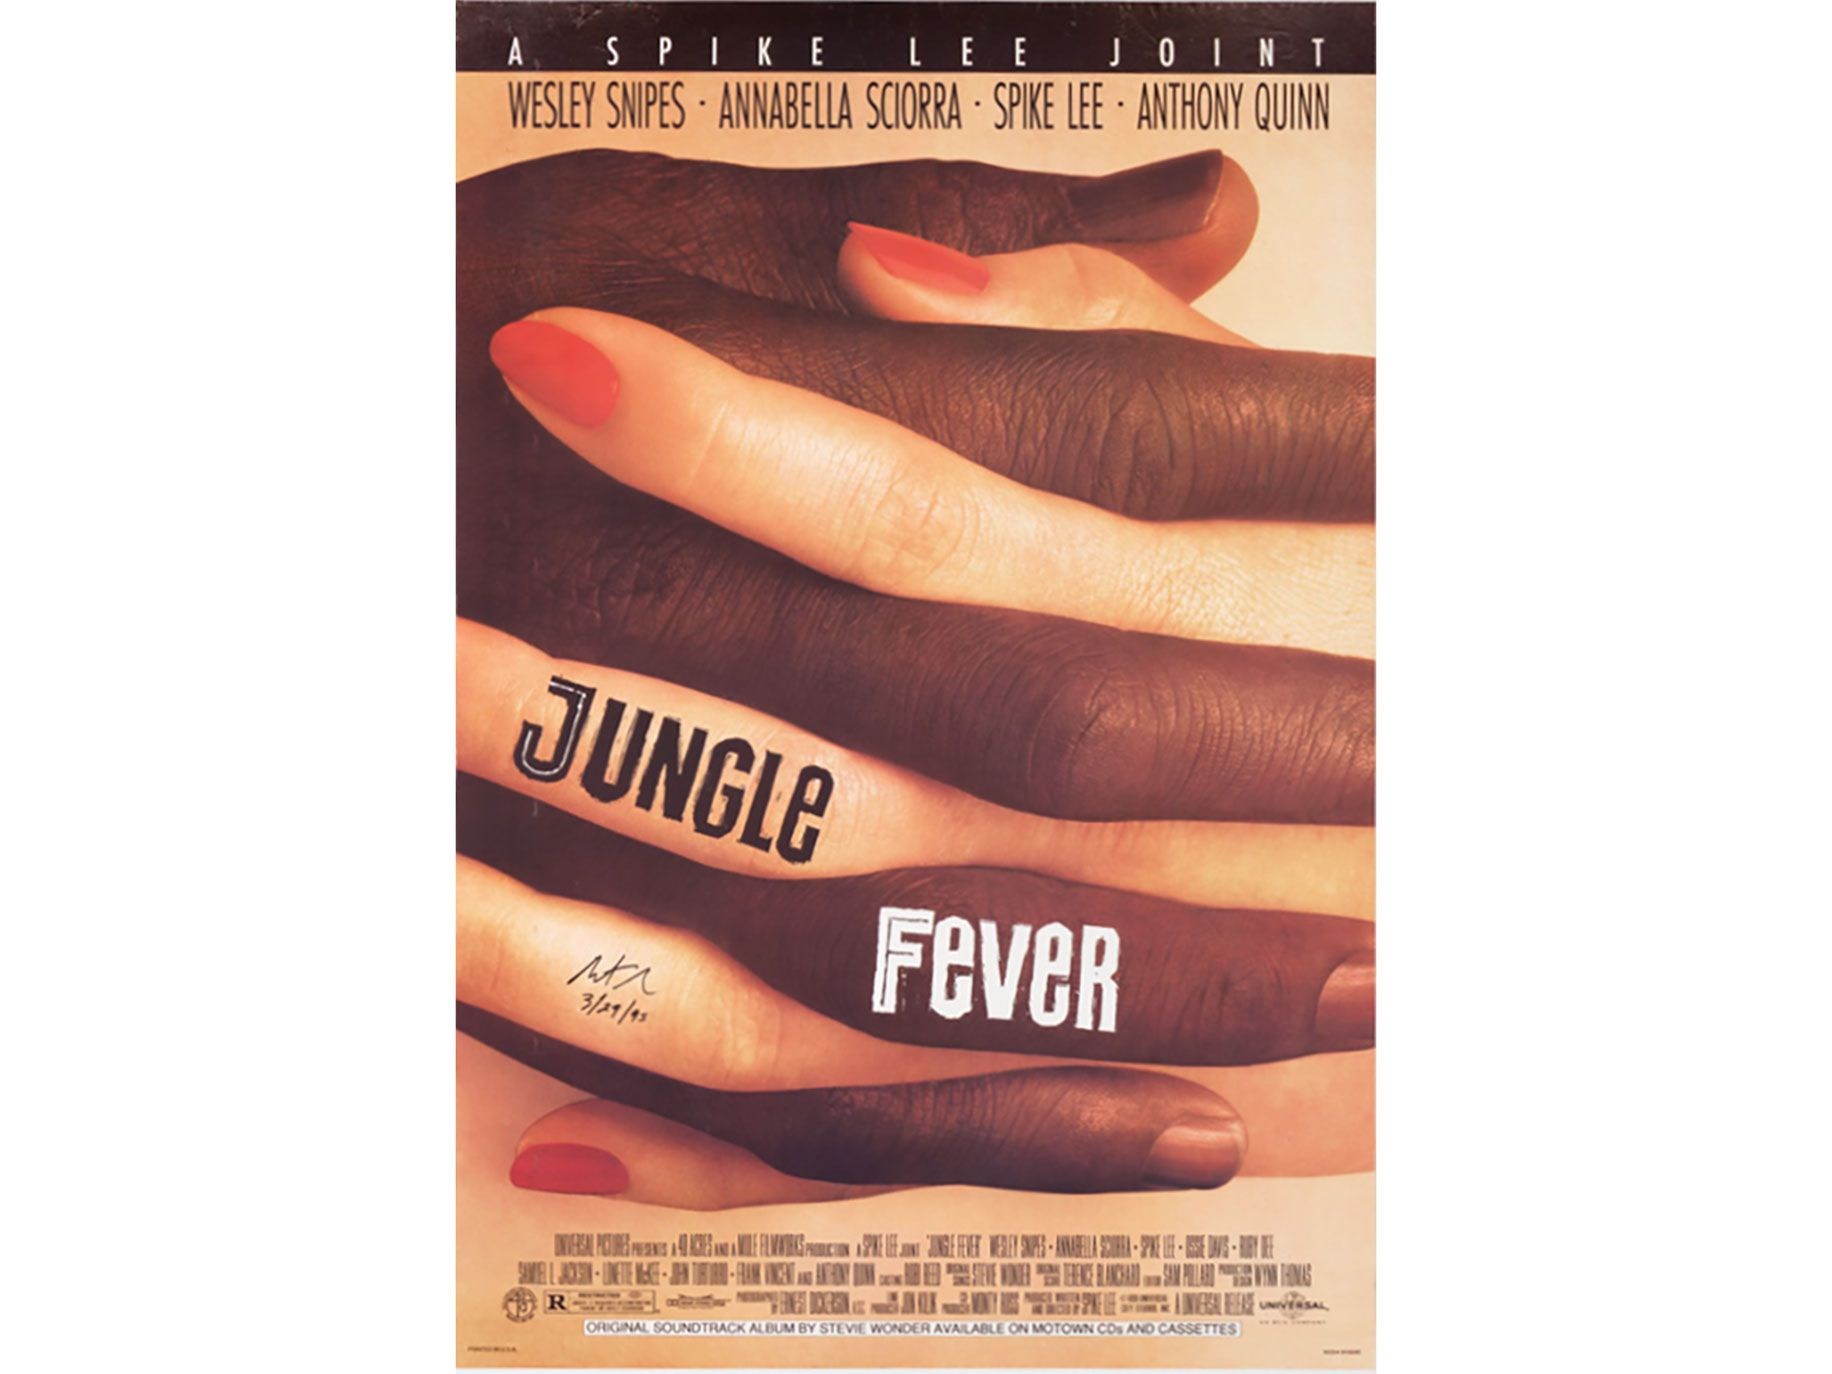 The poster for Spike Lee's Jungle Fever, designed by graphic artist Art Sims.